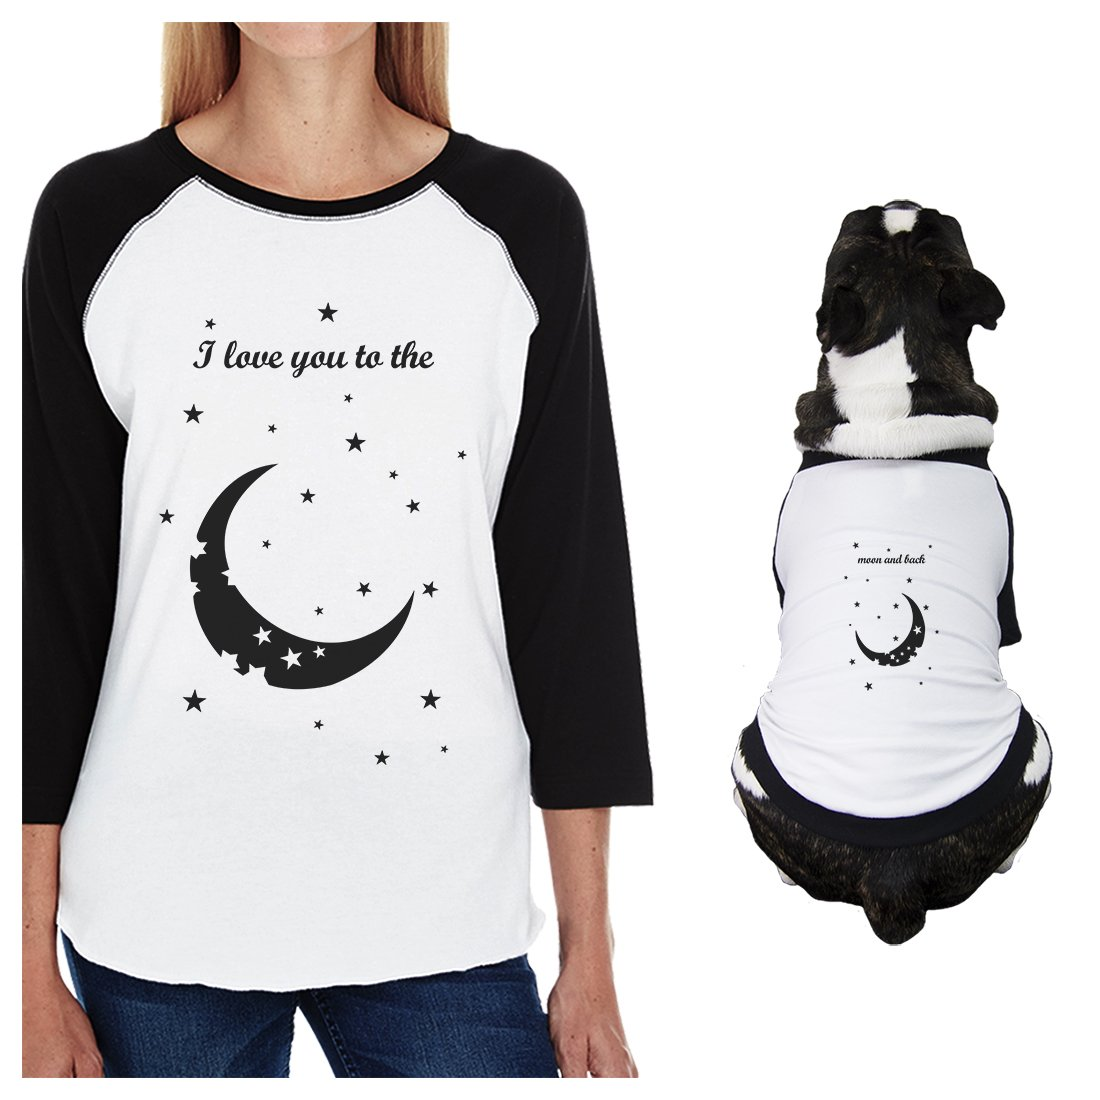 365 Printing Moon and Back Small Dog and Mom Matching Outfits Raglan Tees Cotton (ONWER - L/Pet - M)